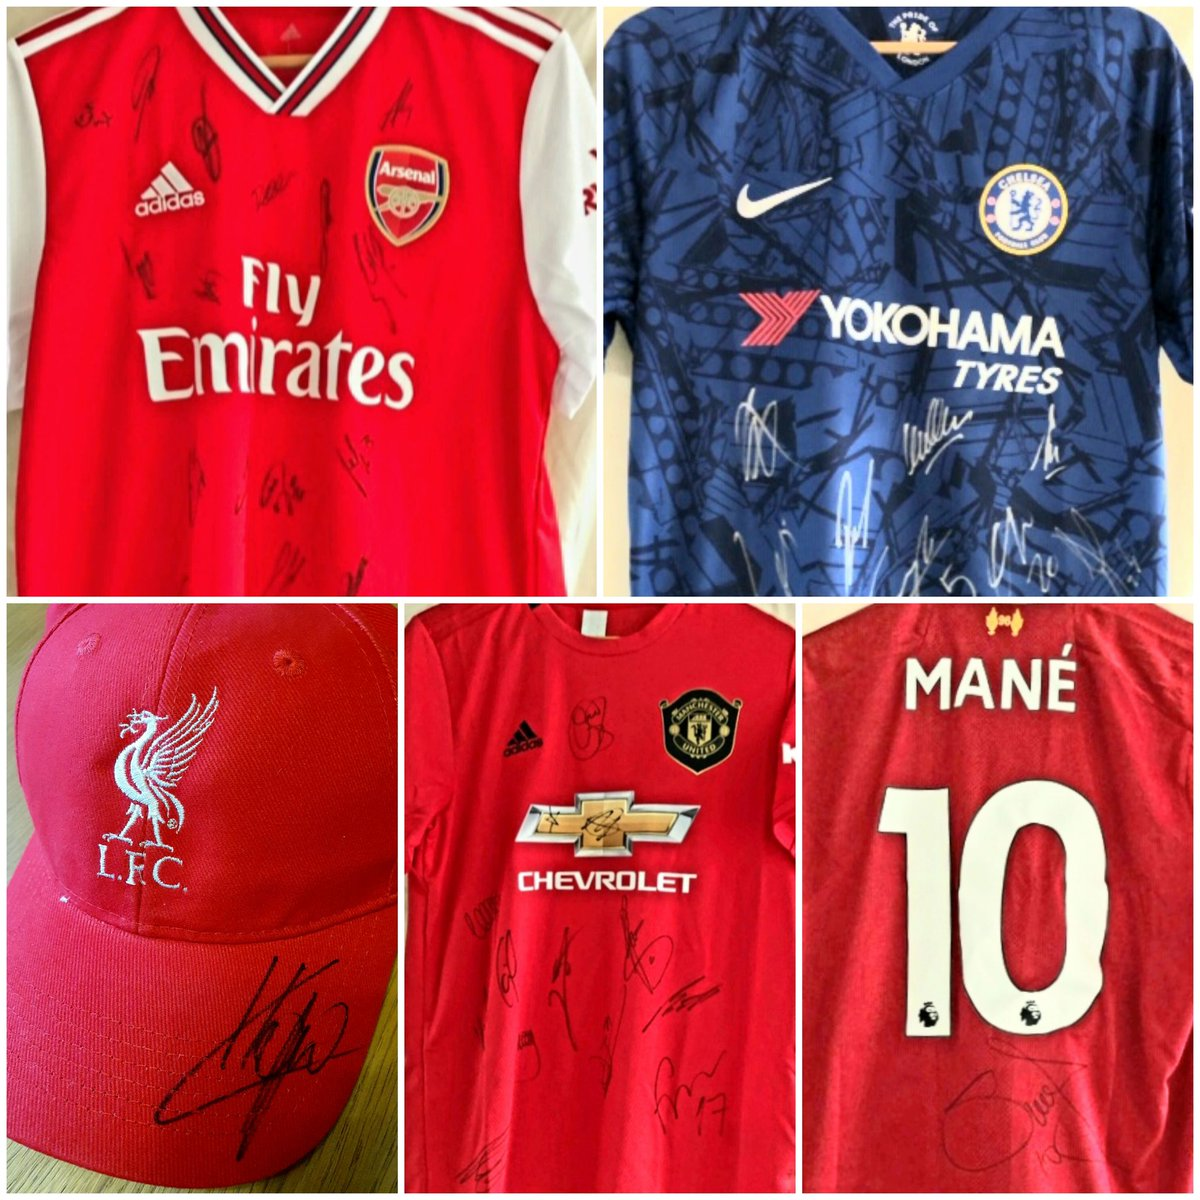 Hi guys we're doing a raffle to raise money for the acute oncology ward at @NNUHCharity that did so much for my Mum. Signed shirts from... #manutd #spurs #afc #cfc #WHUFC #ncfc #RBLeipzig #SadioMane & a #klopp cap.   Just £1 a ticket, click link 👇 https://t.co/qZLRUe9n3X https://t.co/h0Hw4MclLA